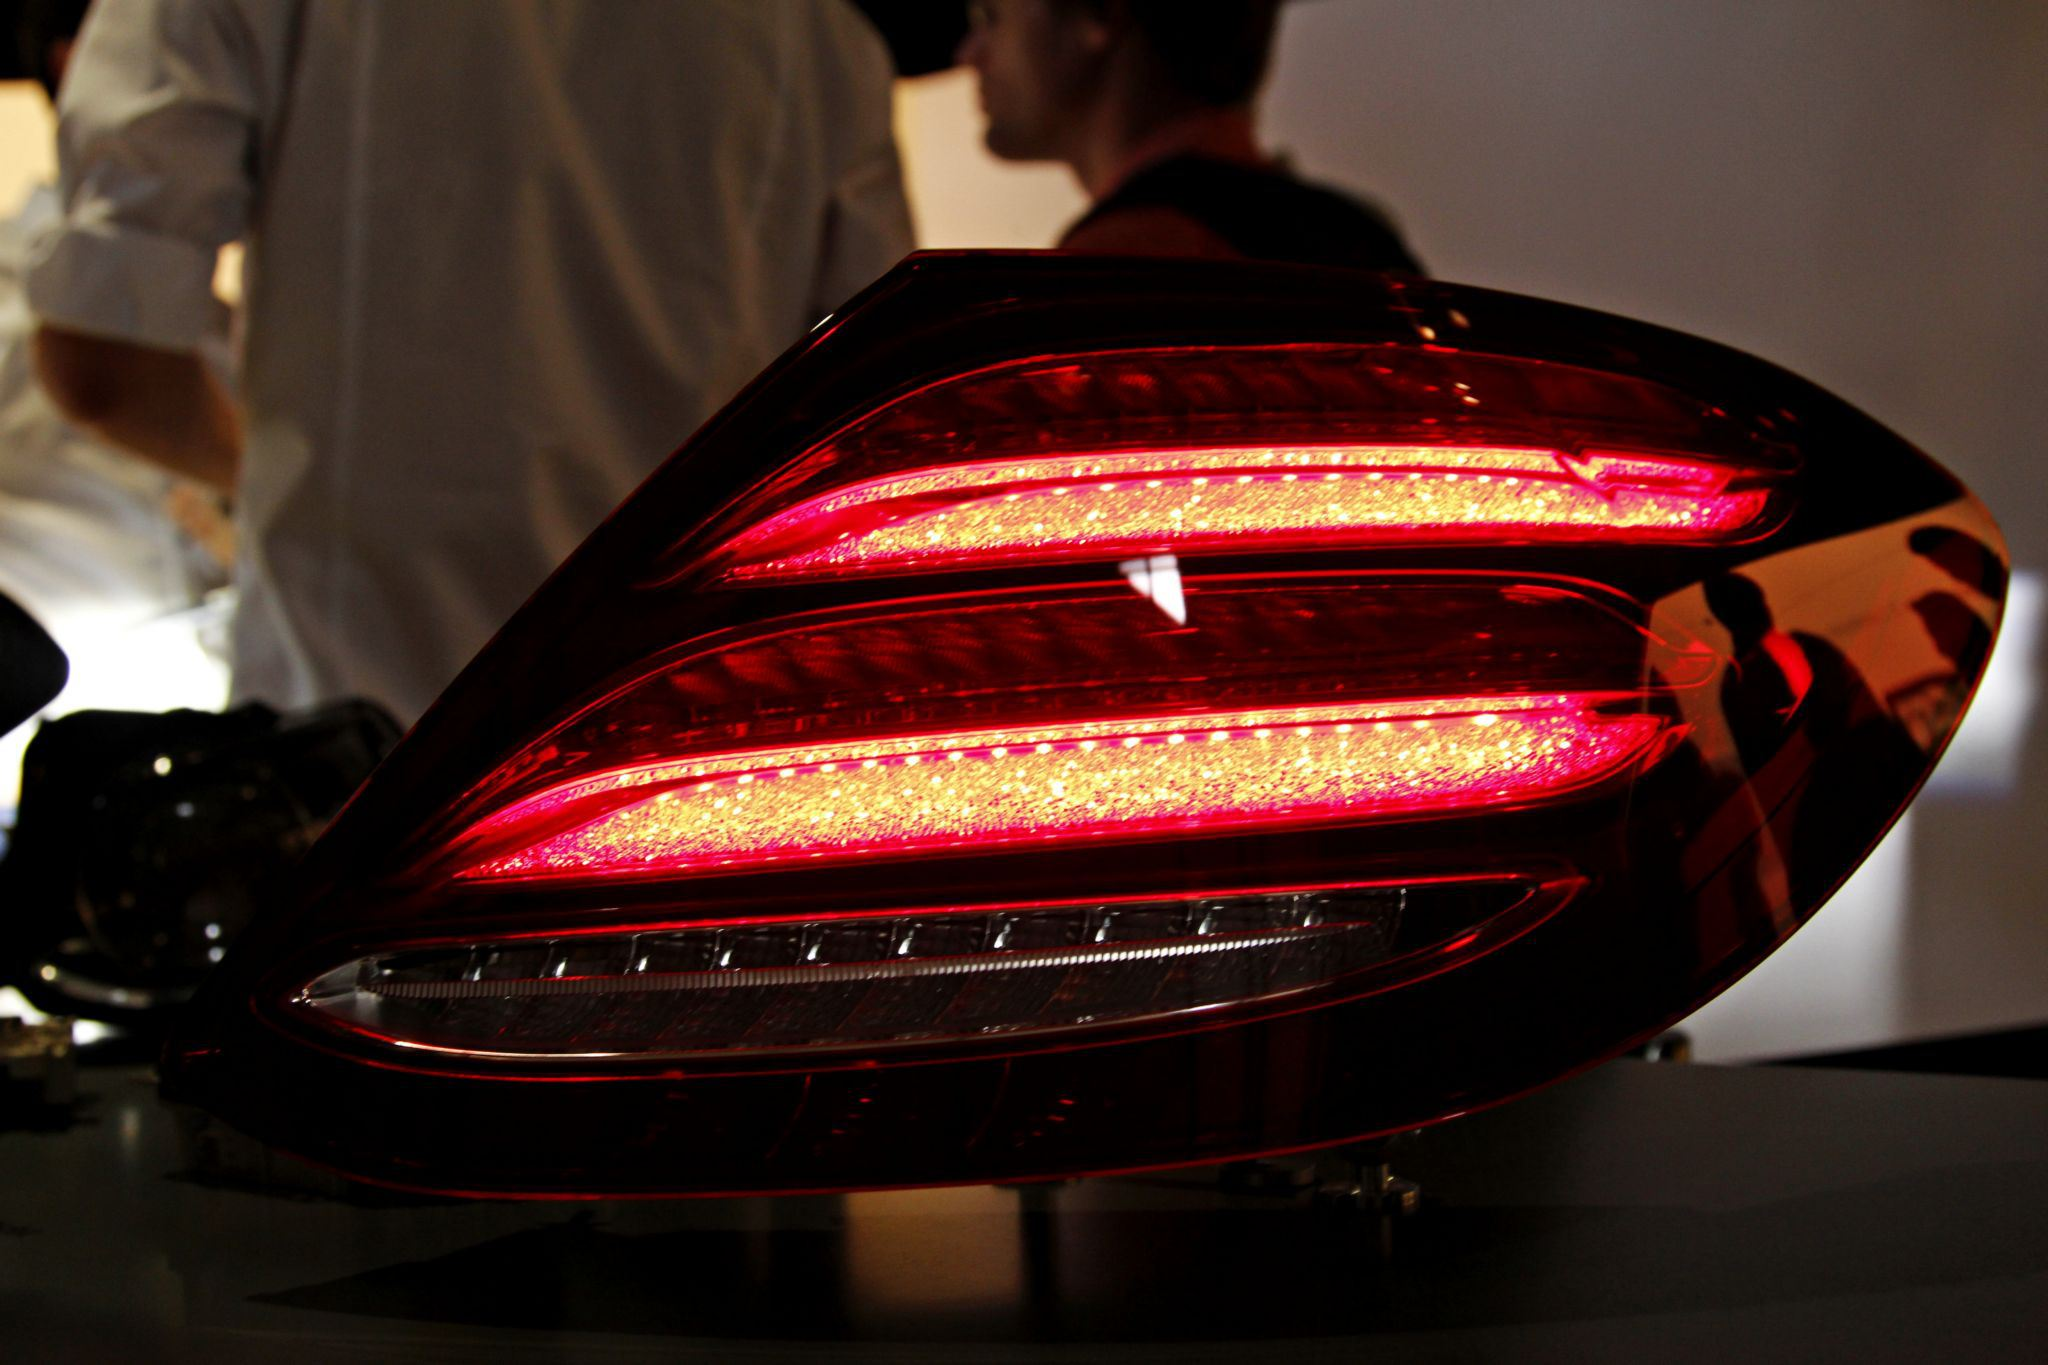 2016 W213 Mercedes E Class Taillights Revealed Allegedly